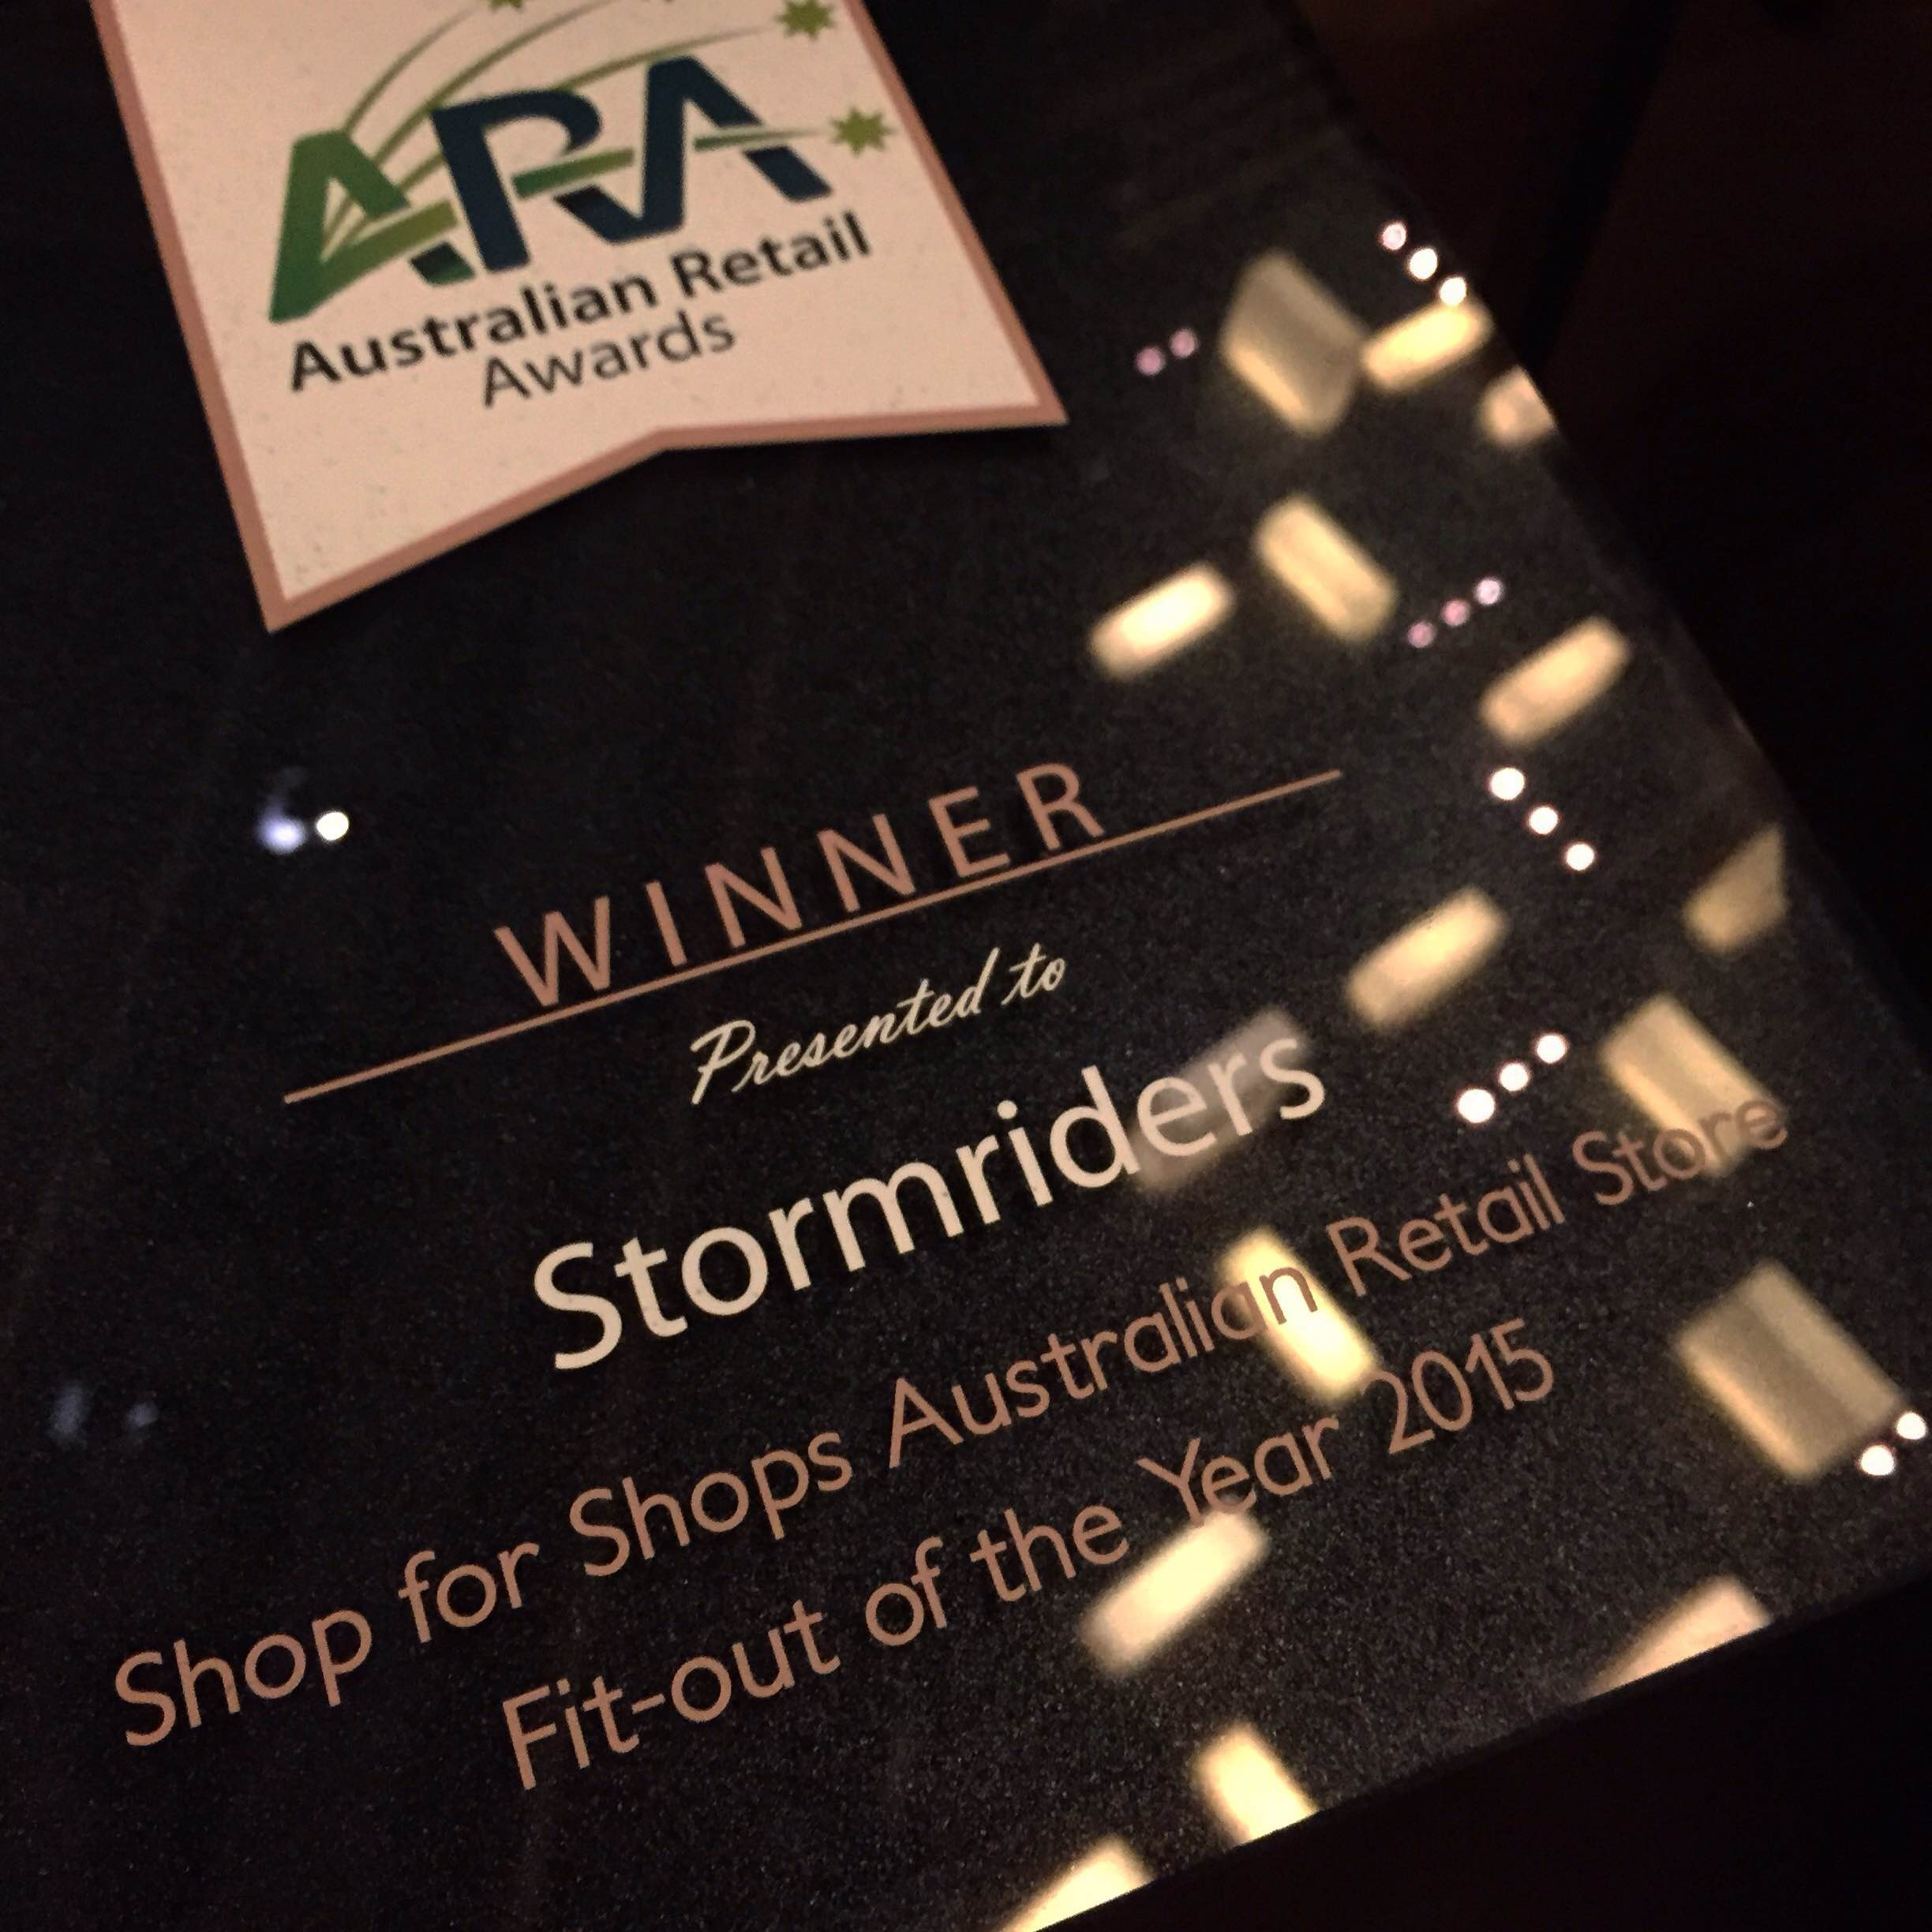 Saltwater Wine & Stormriders crowned best Independent Retailer